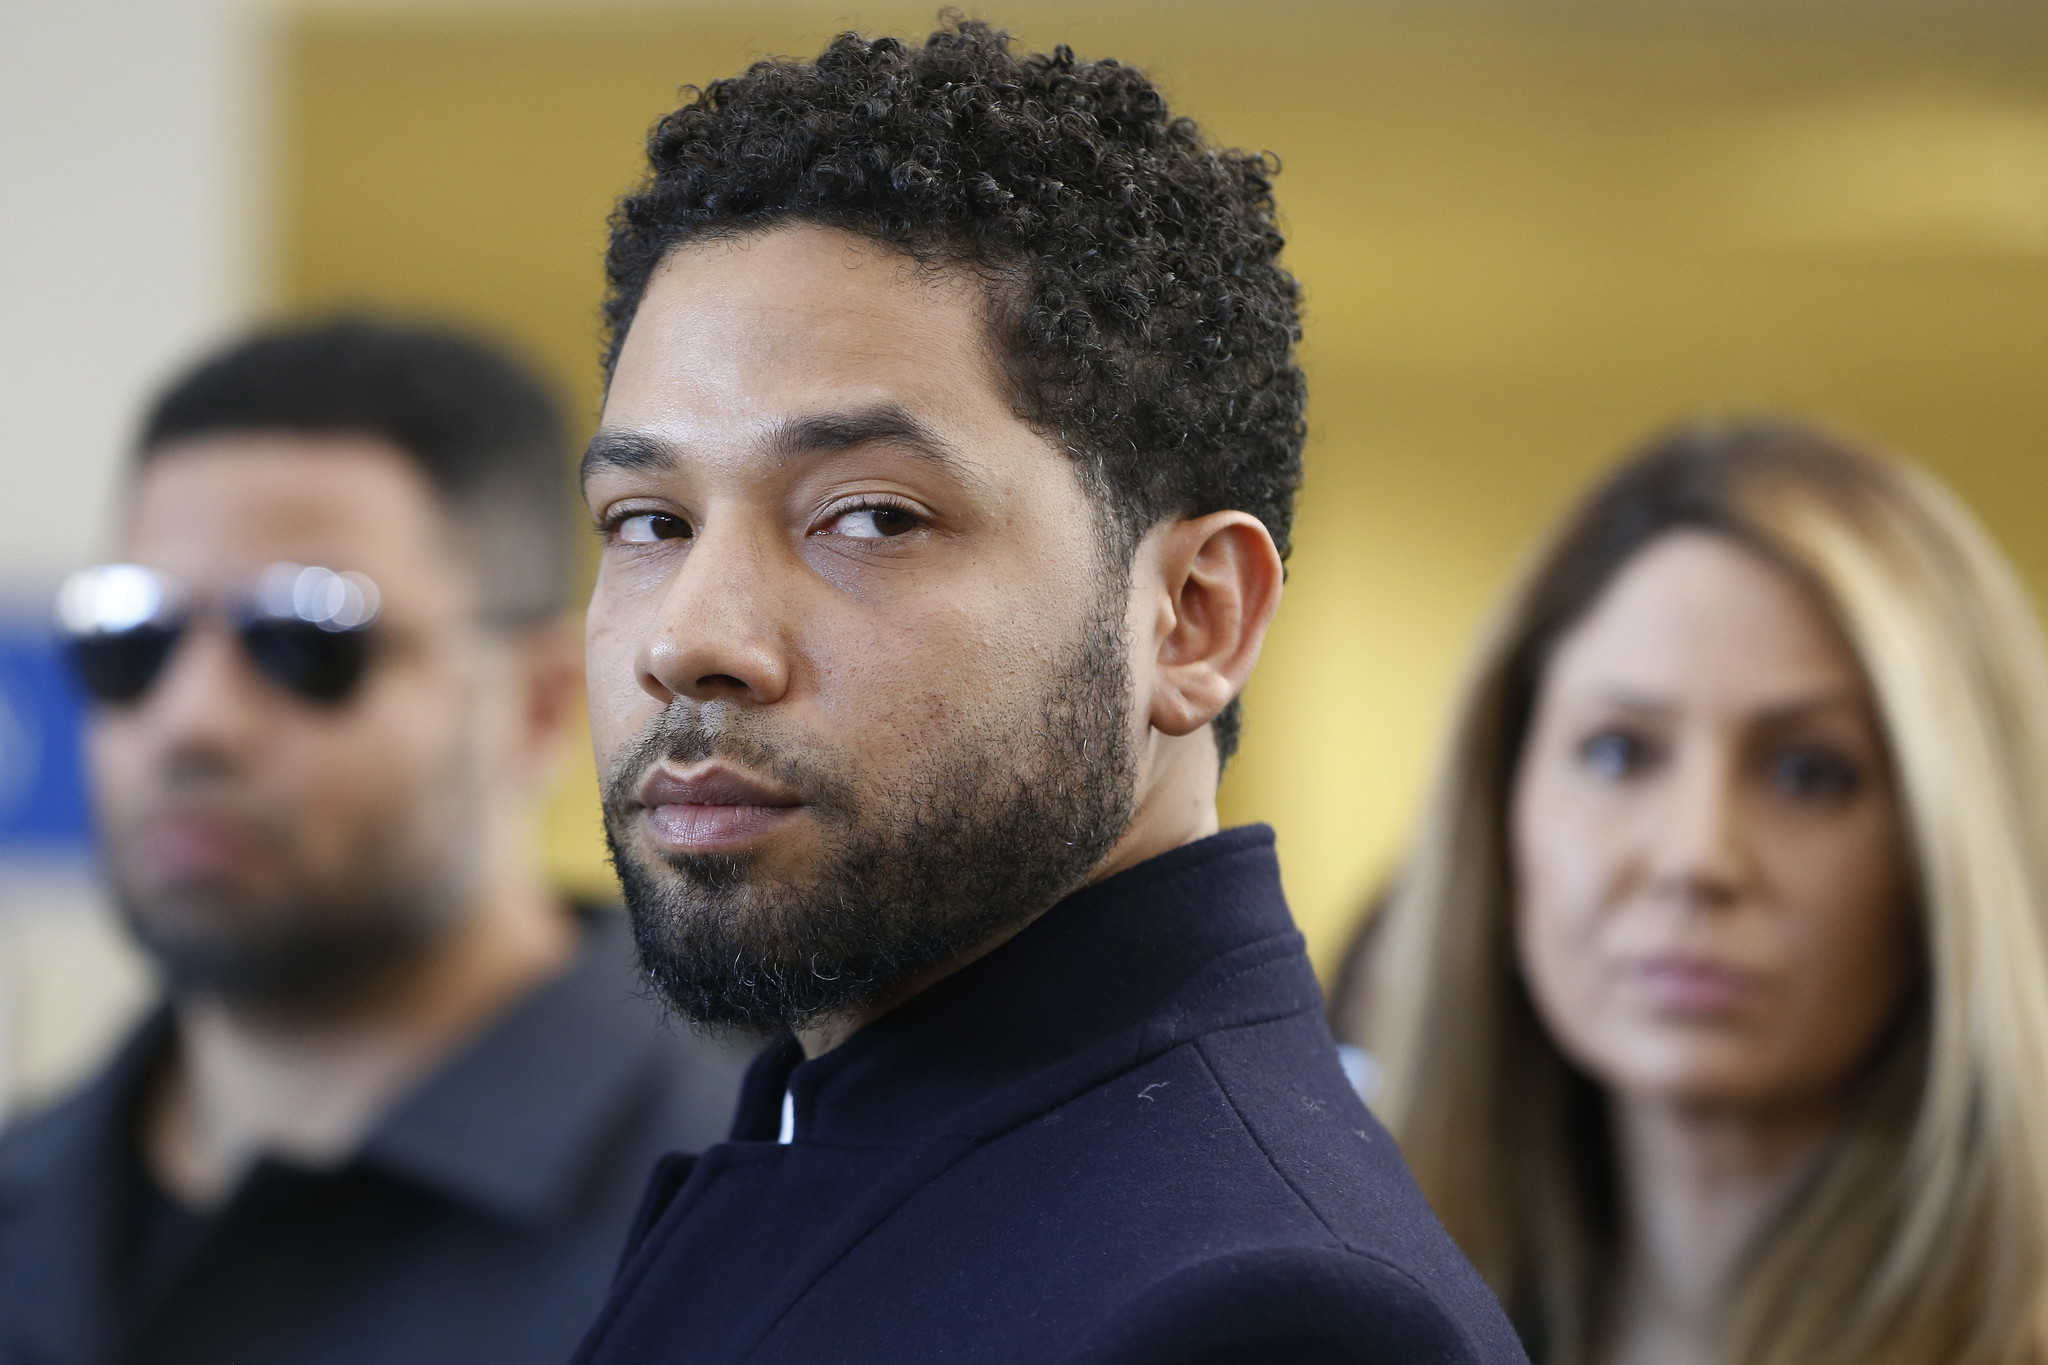 Jussie Smollett indicted by special prosecutor amid review of alleged hate 'hoax' in Chicago: report